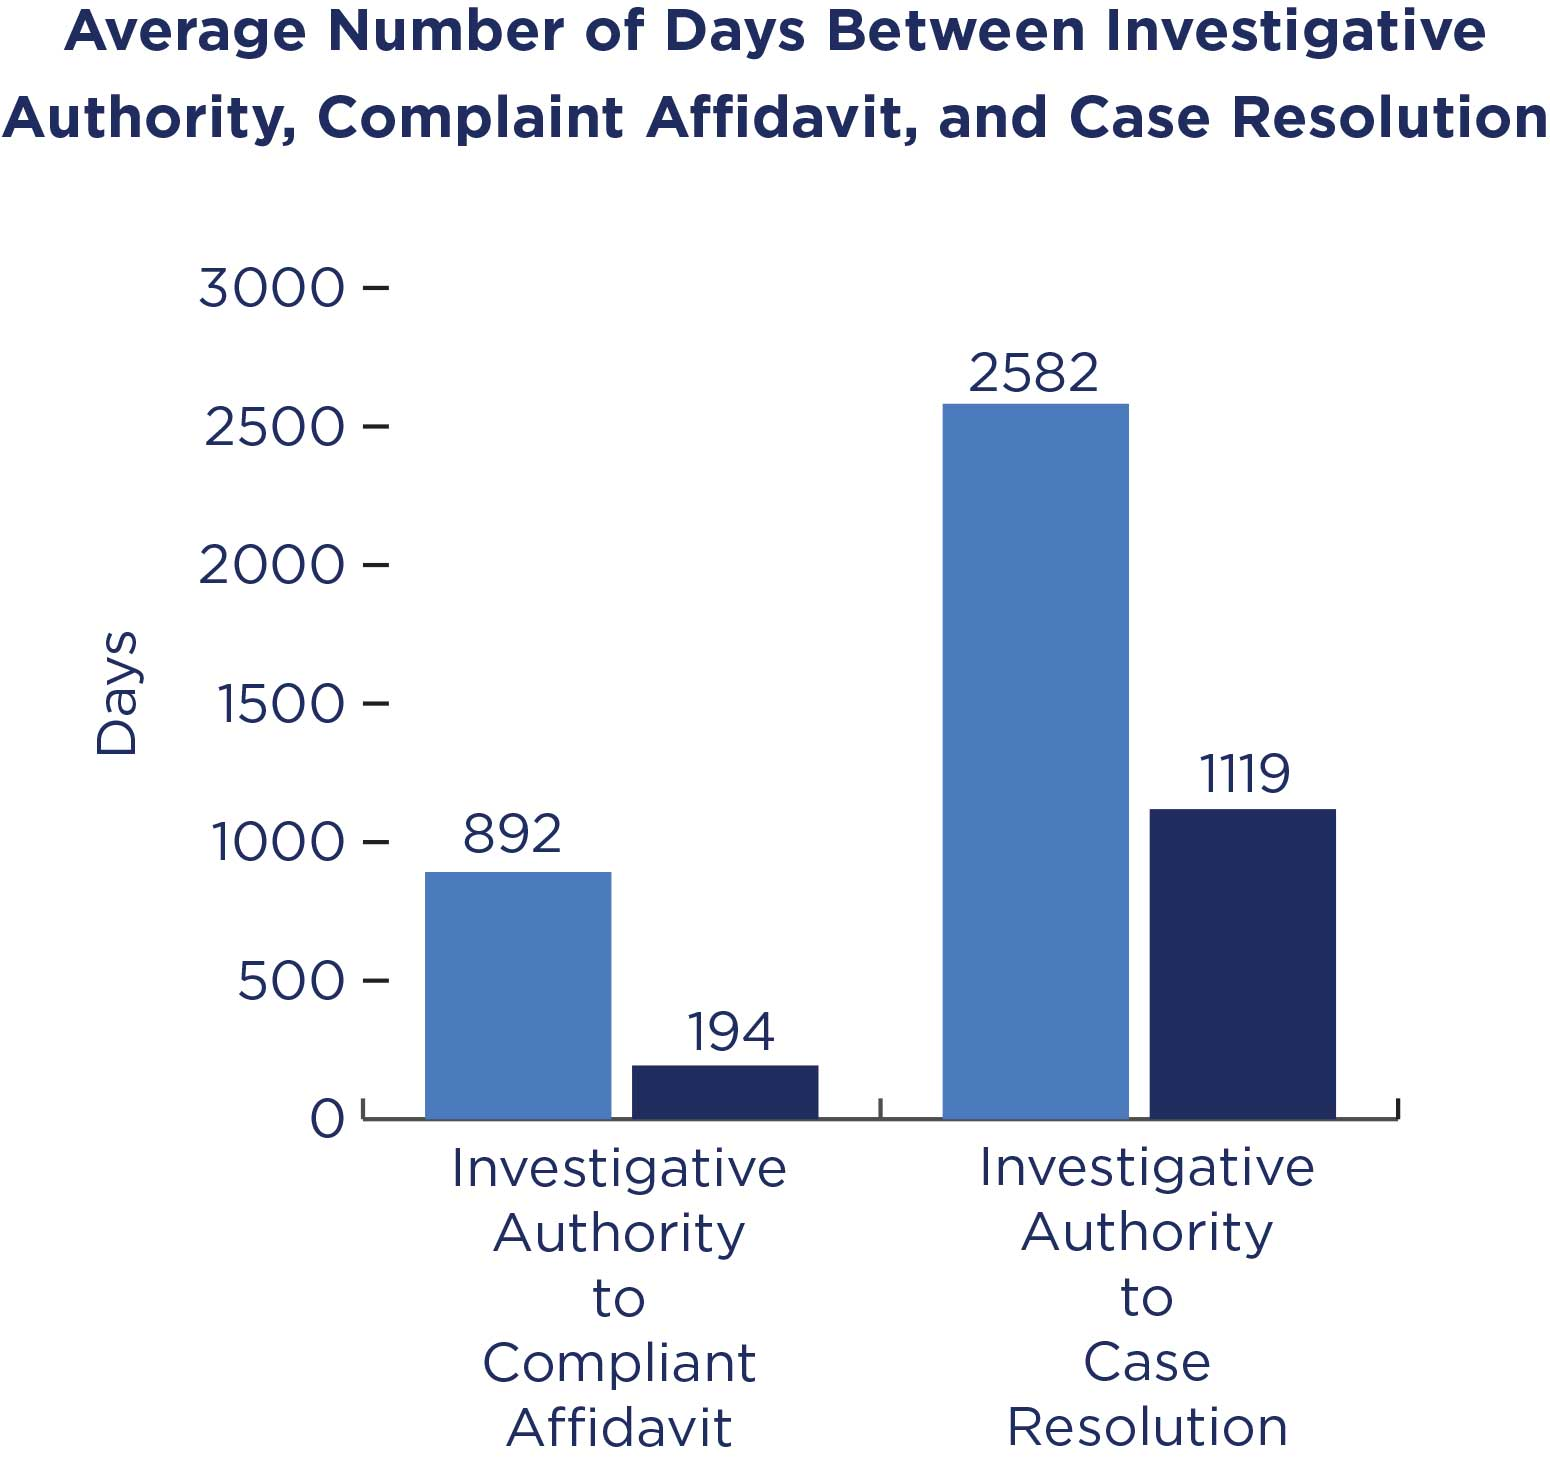 Chart of Average Number of Days Between Investigative Authority, Complaint Adavit, and Case Resolution